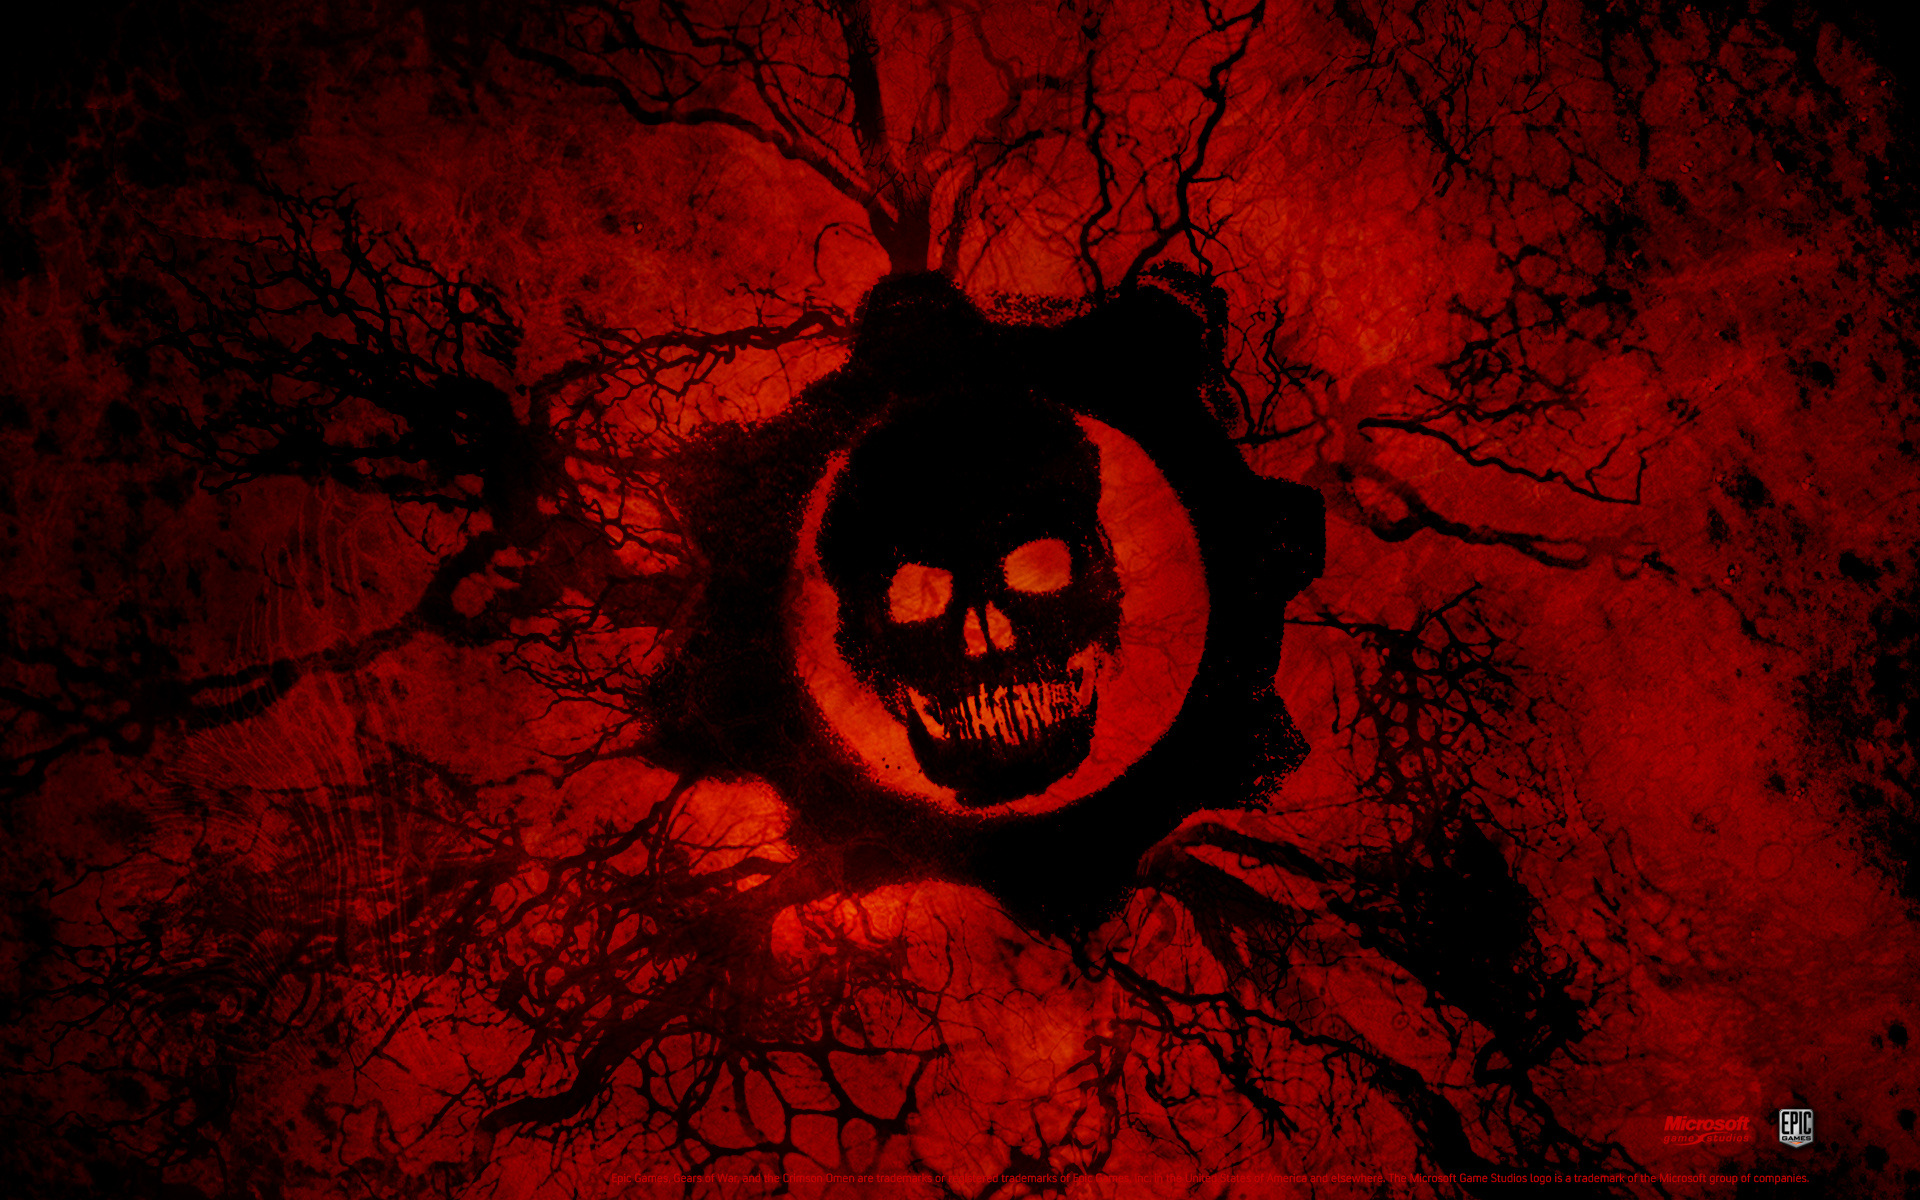 72 gears of war 3 hd wallpapers | background images - wallpaper abyss